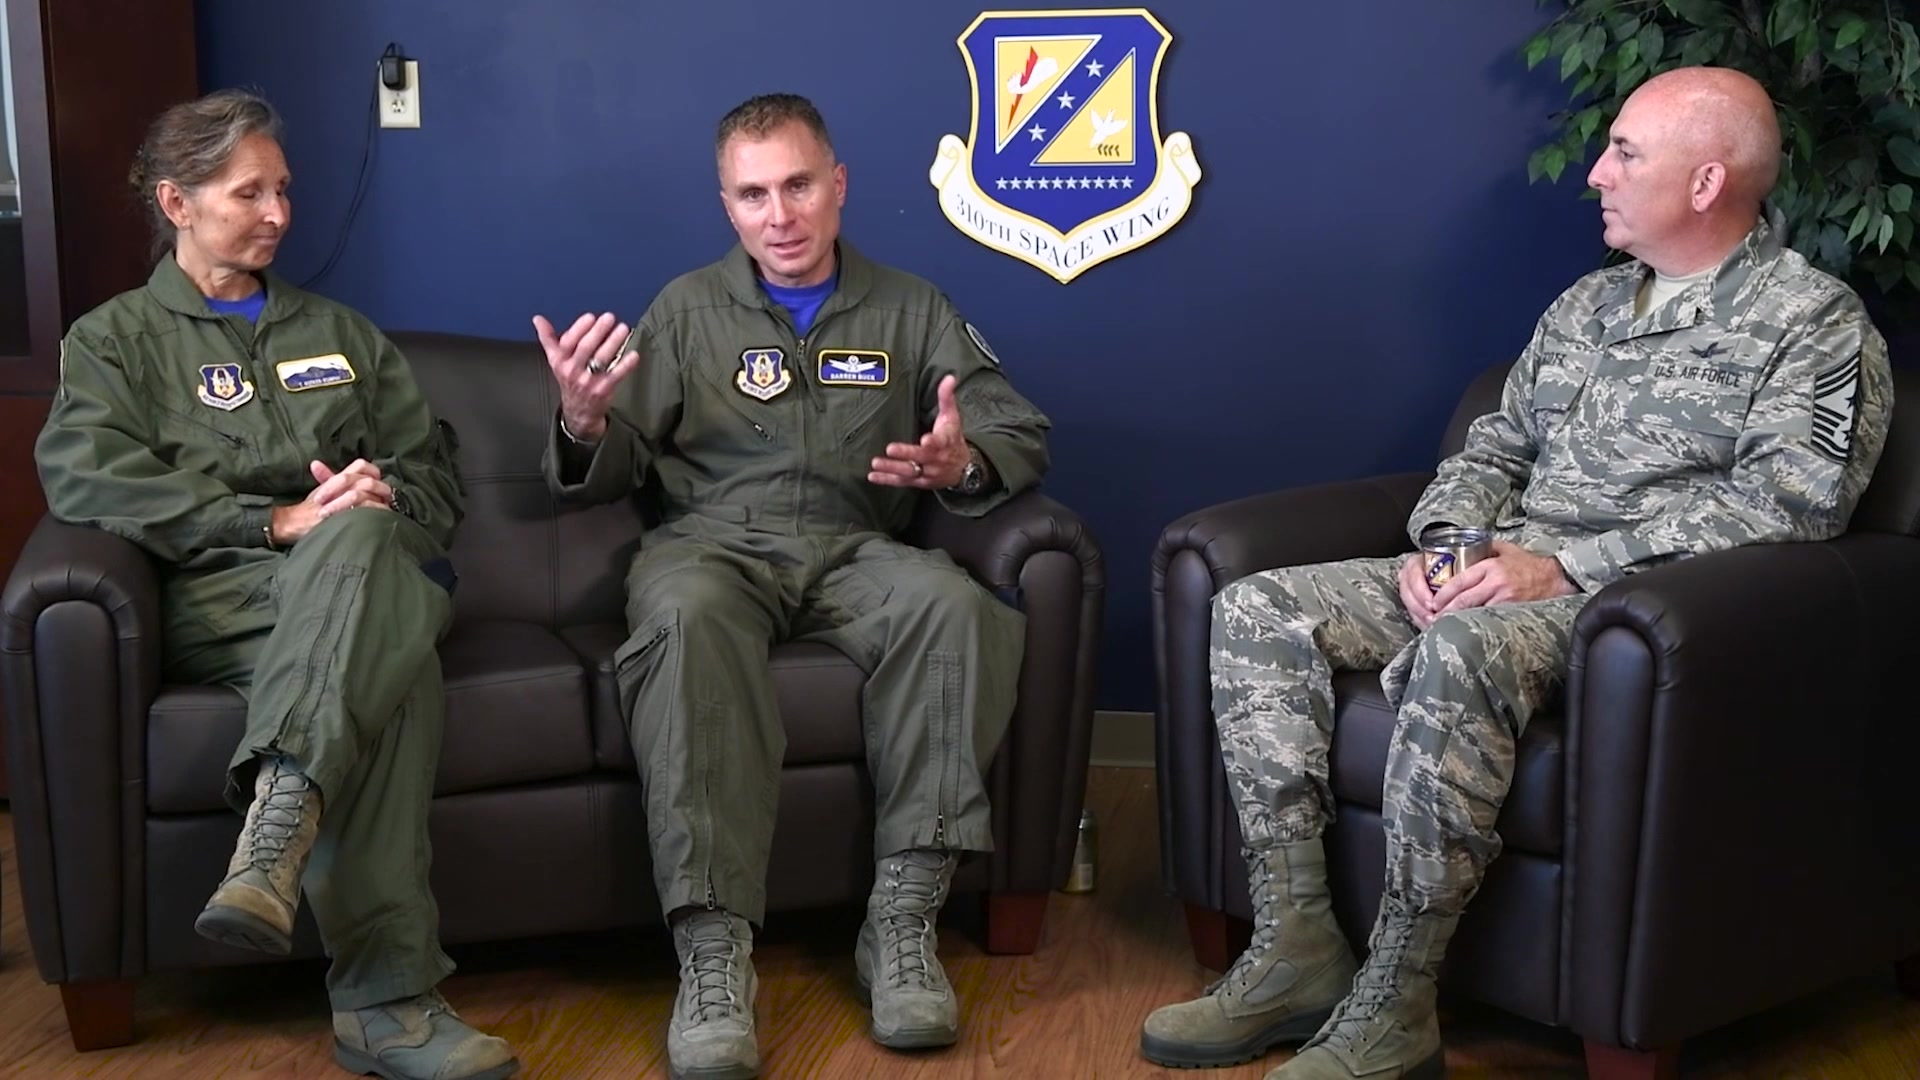 SCHRIEVER AIR FORCE BASE, Colo. -- Col. Kueker-Murphy, Col. Darren Buck and Command Chief Master Sgt. Todd Scott, the 310th Space Wing leadership, bid farewell to Colonel Buck and discuss the future of space. (U.S. Air Force video/Technical Sergeant Jeff Fitzmorris)